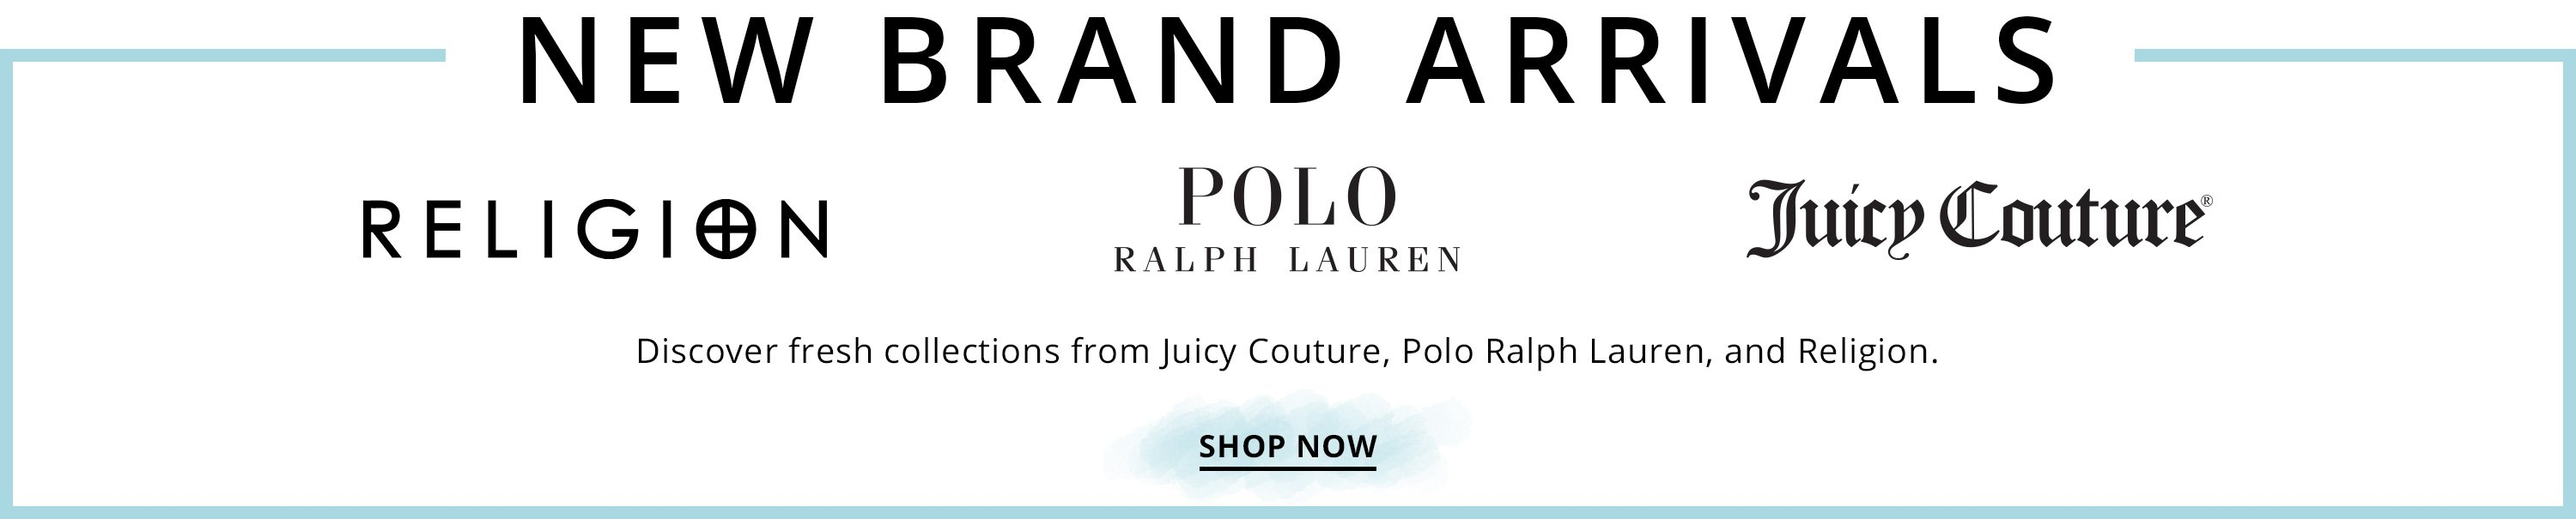 New Brand Arrivals Banner. Juicy Couture, Polo Ralph Lauren Swim, Religion.